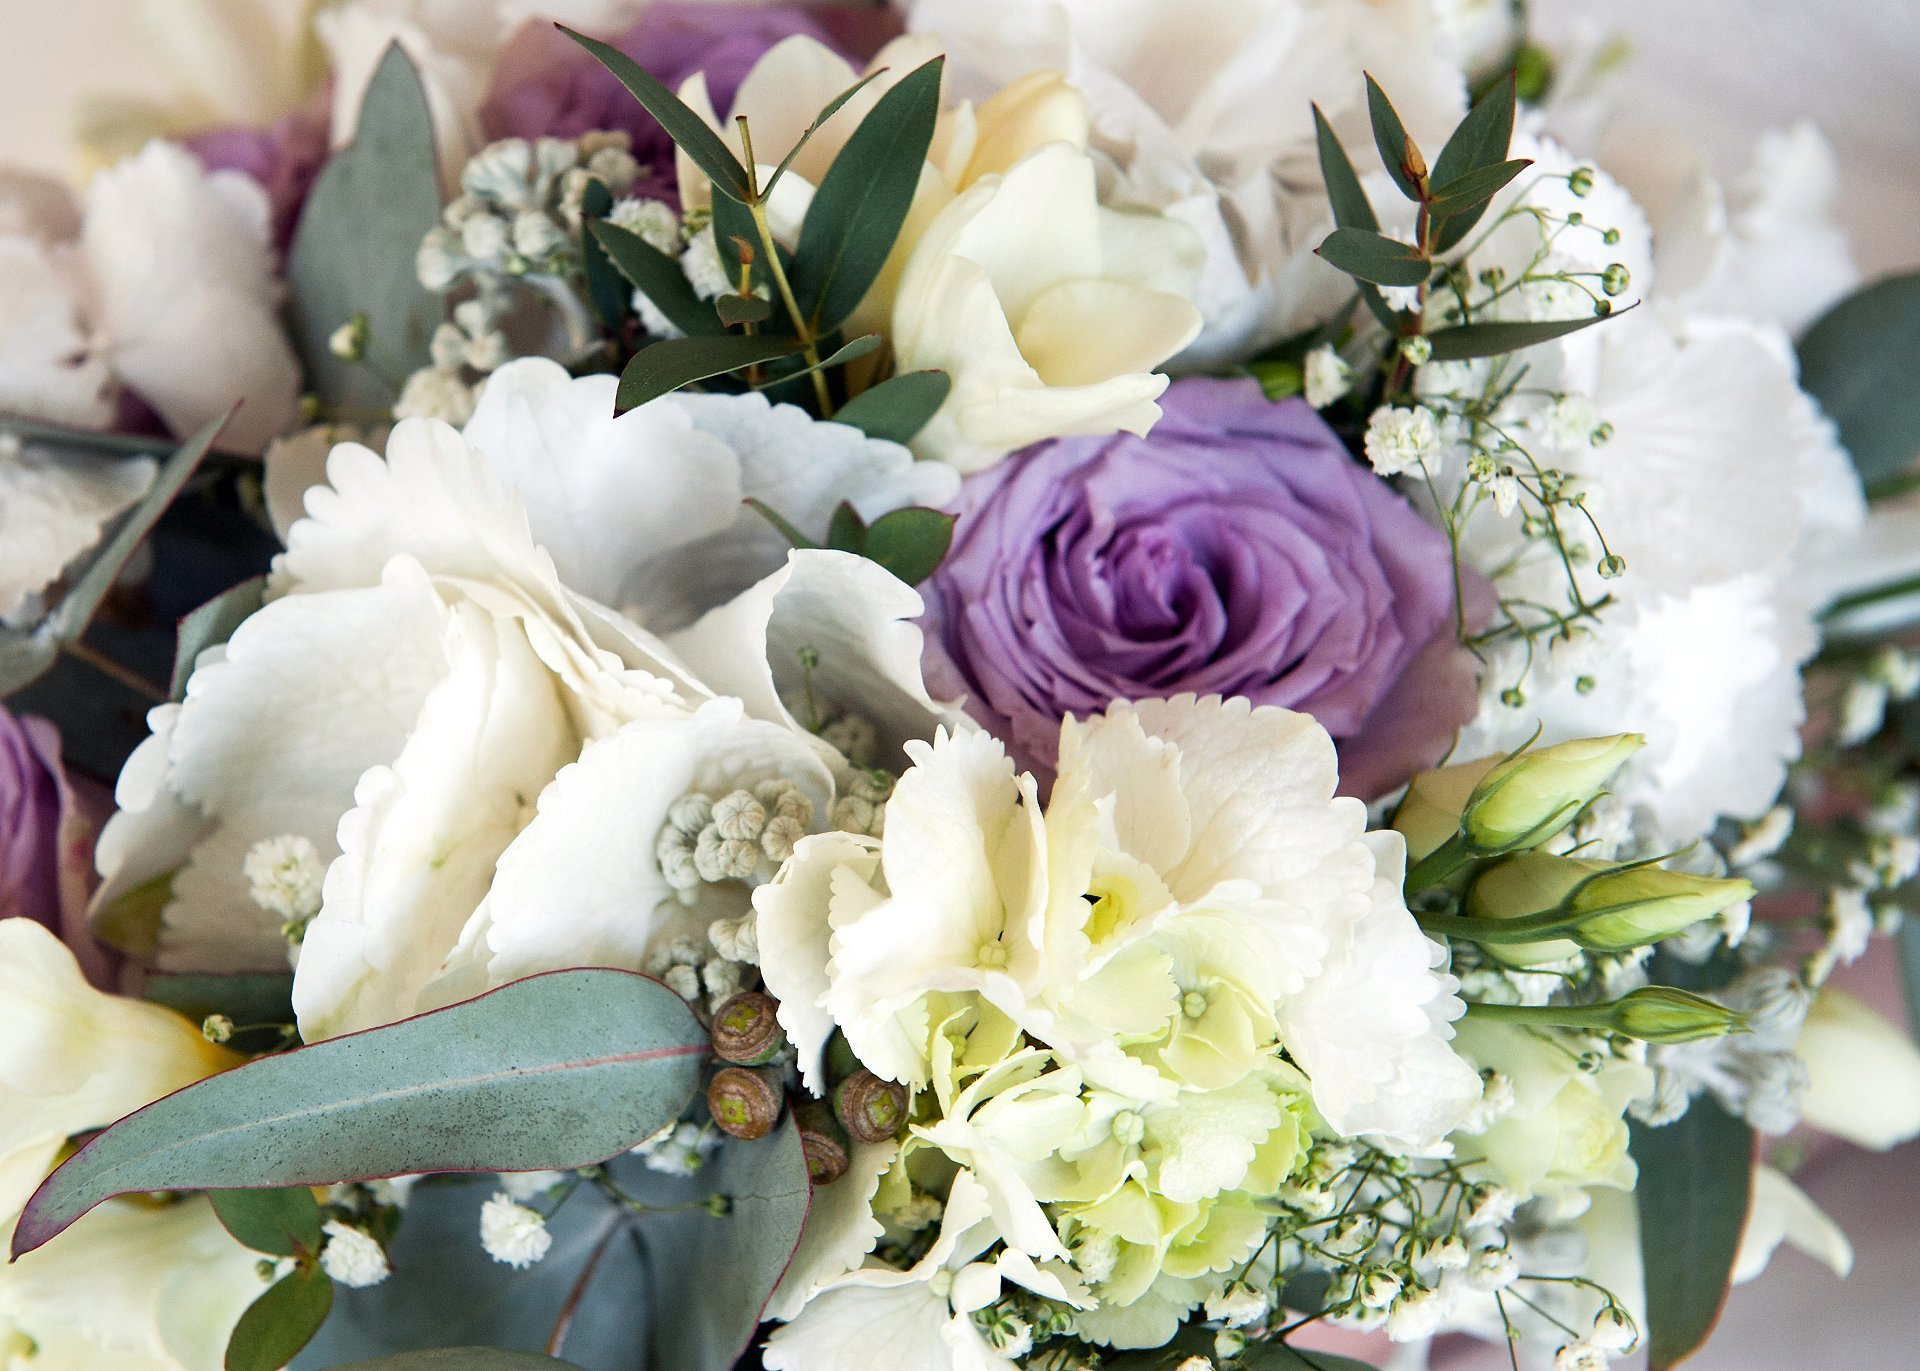 Jess's wedding bouquet in white, cream, mauve and green at Starborough Manor in Marsh Green, Kent